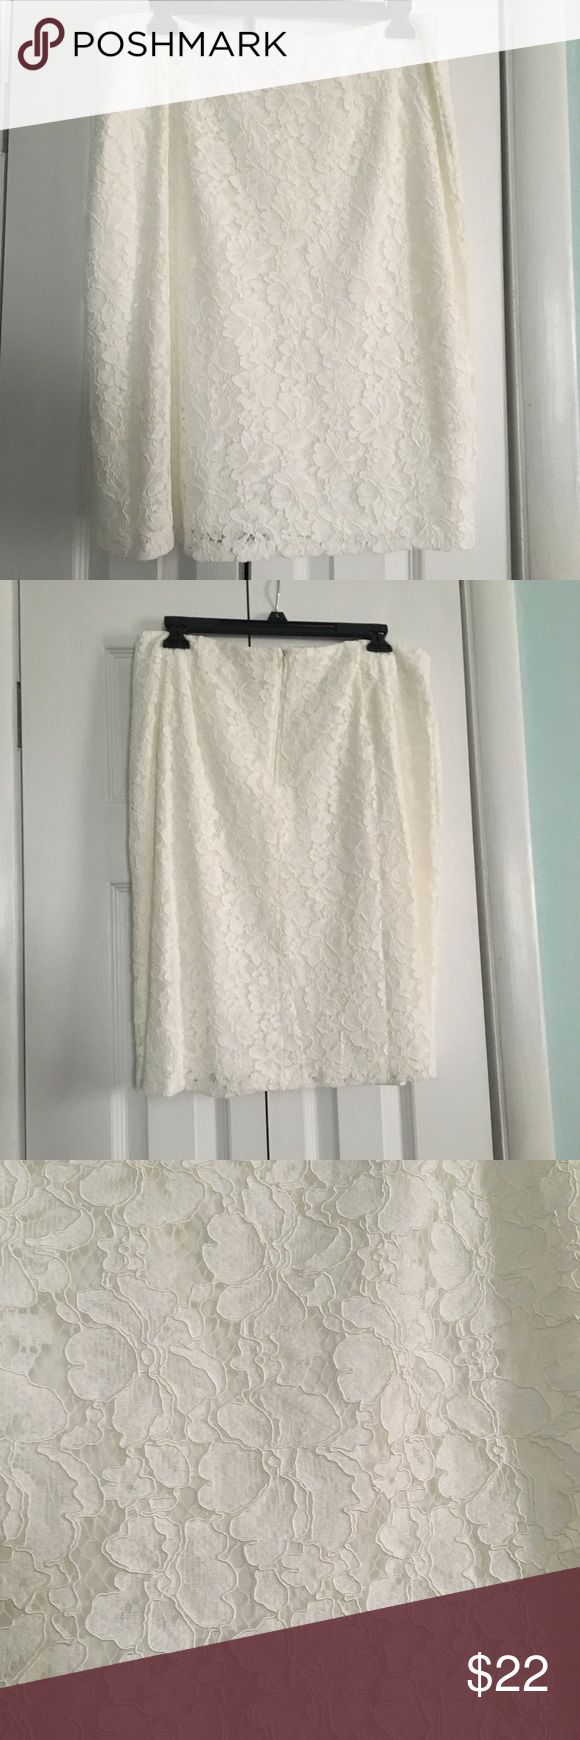 Beautiful Cream Lace Skirt Perfect for Easter 🐣 This beautiful lace skirt will give you all the Springtime feels. 😍 It's a pencil style skit and the lace is an overlay to the fabric underneath. Adiva Skirts Pencil